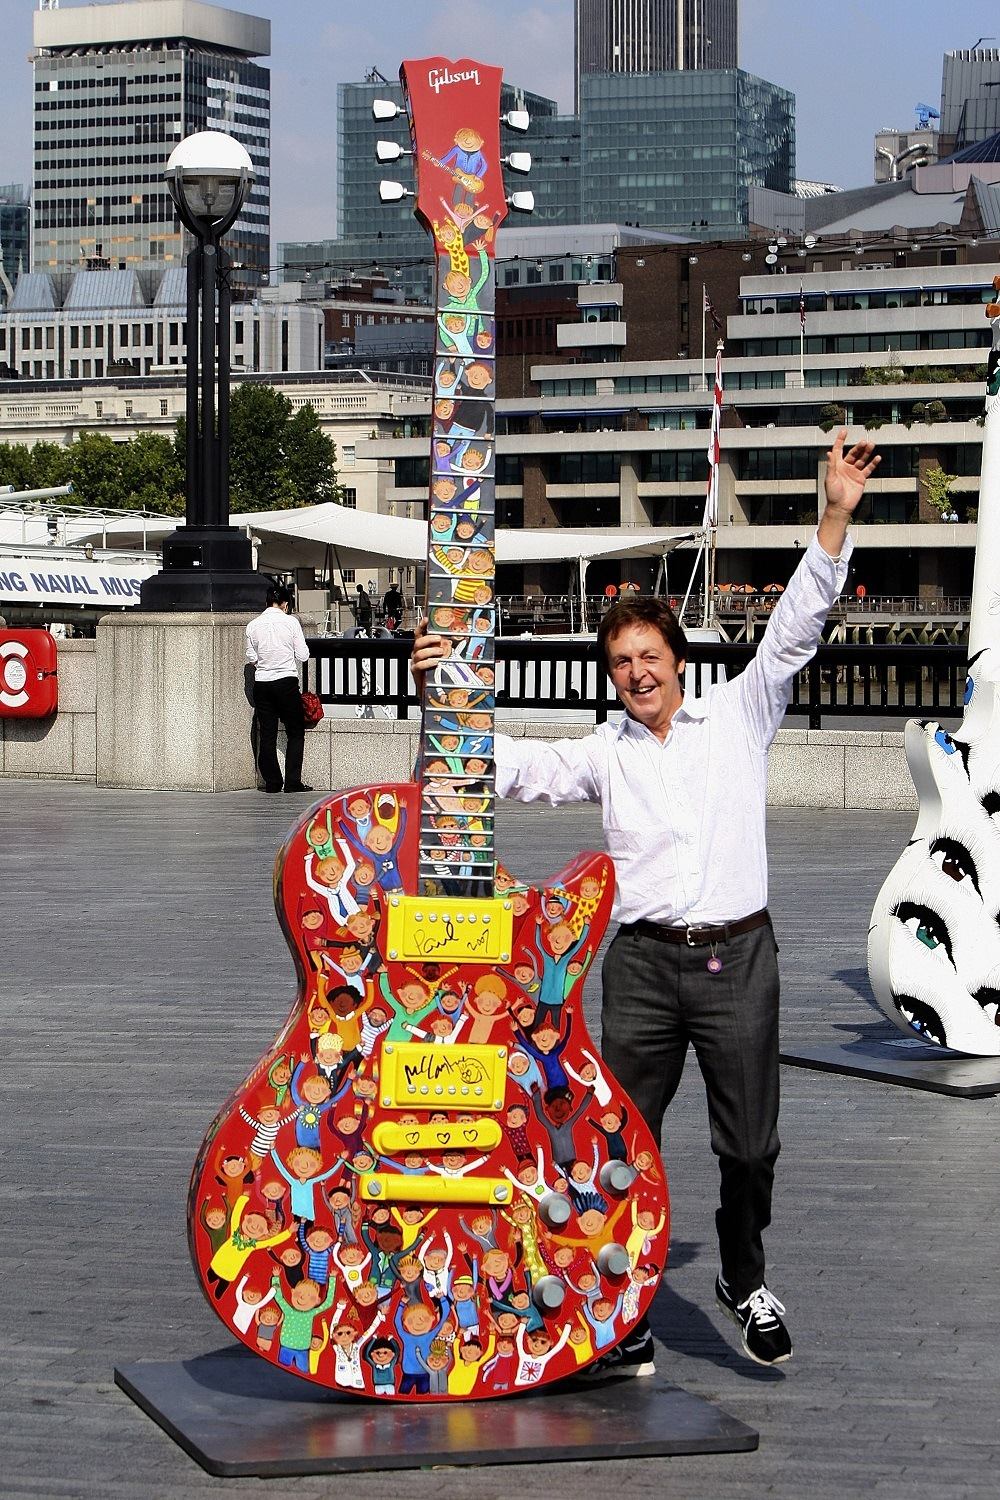 Sir Paul McCartney Signs his ten foot Gibson Les Paul sculpture at More London Riverside by City Hall on September 12, 2007